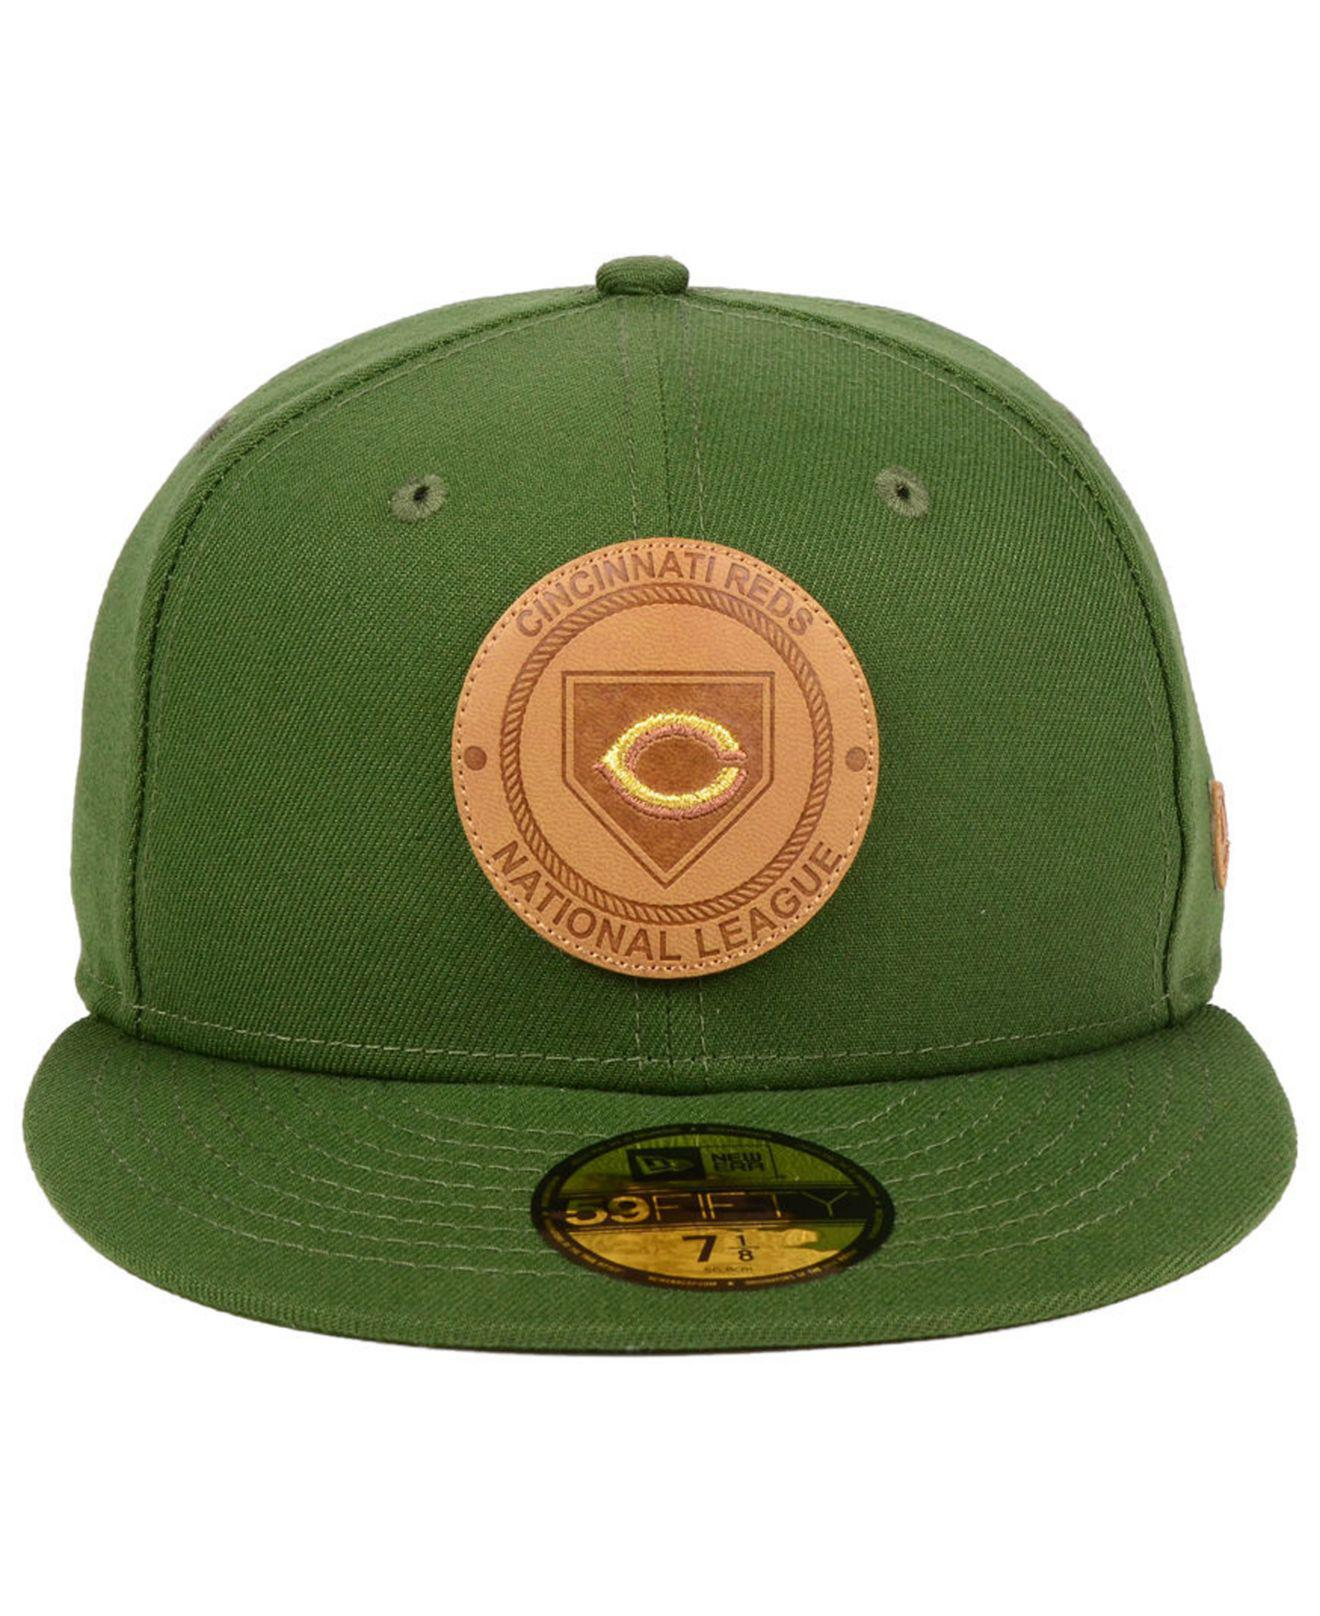 d23cbb23d83 Lyst - KTZ Cincinnati Reds Vintage Olive 59fifty Fitted Cap in Green ...